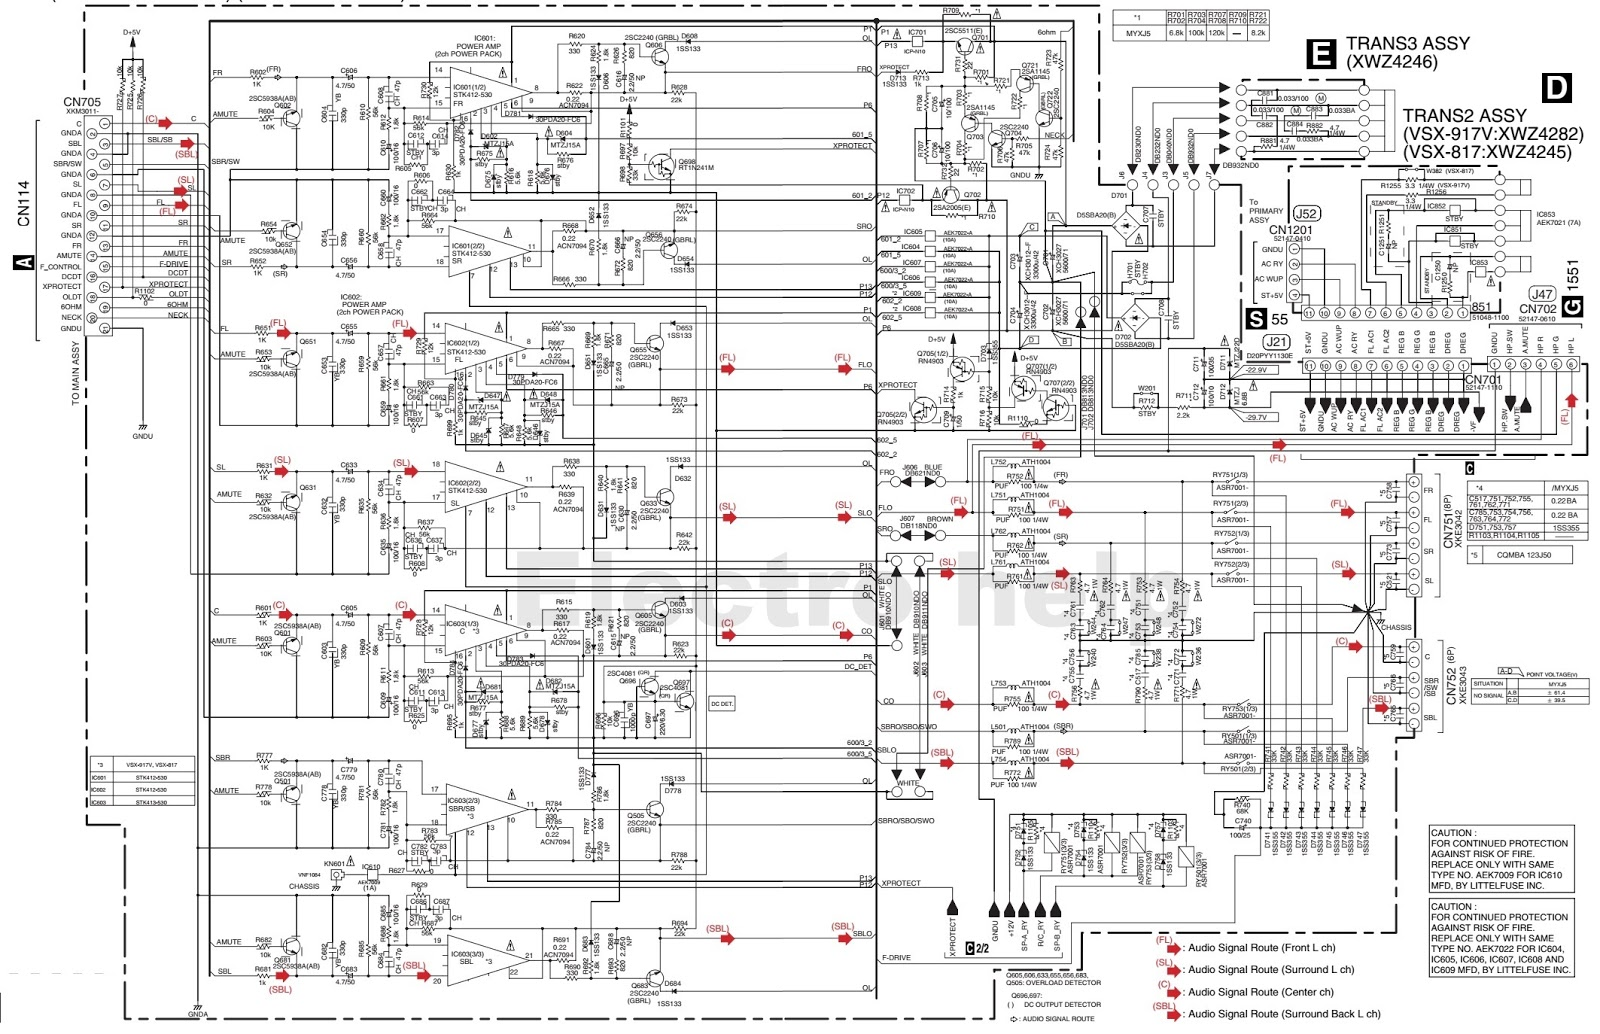 [DIAGRAM] Lowe Srx30 Receiver Schematic Diagram Manual